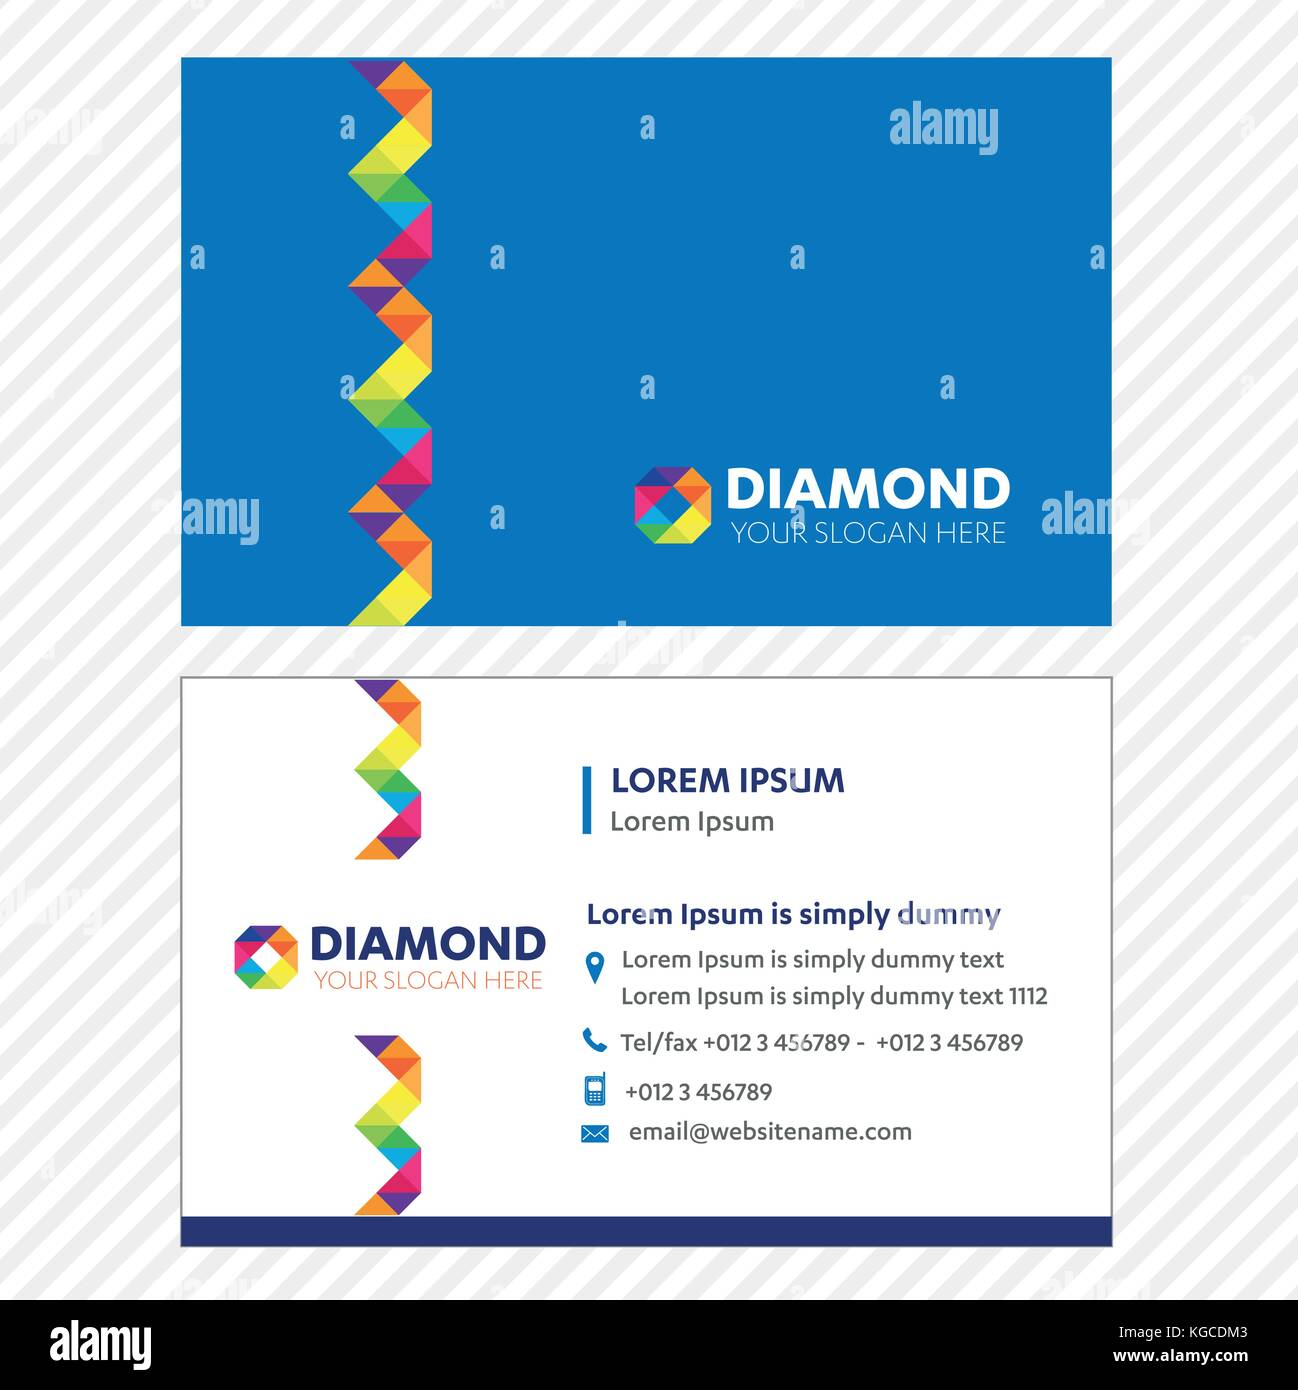 Business card vector template tech logo link network visiting card business card vector template tech logo link network visiting card corporate identity corporate business business community credit card friedricerecipe Choice Image